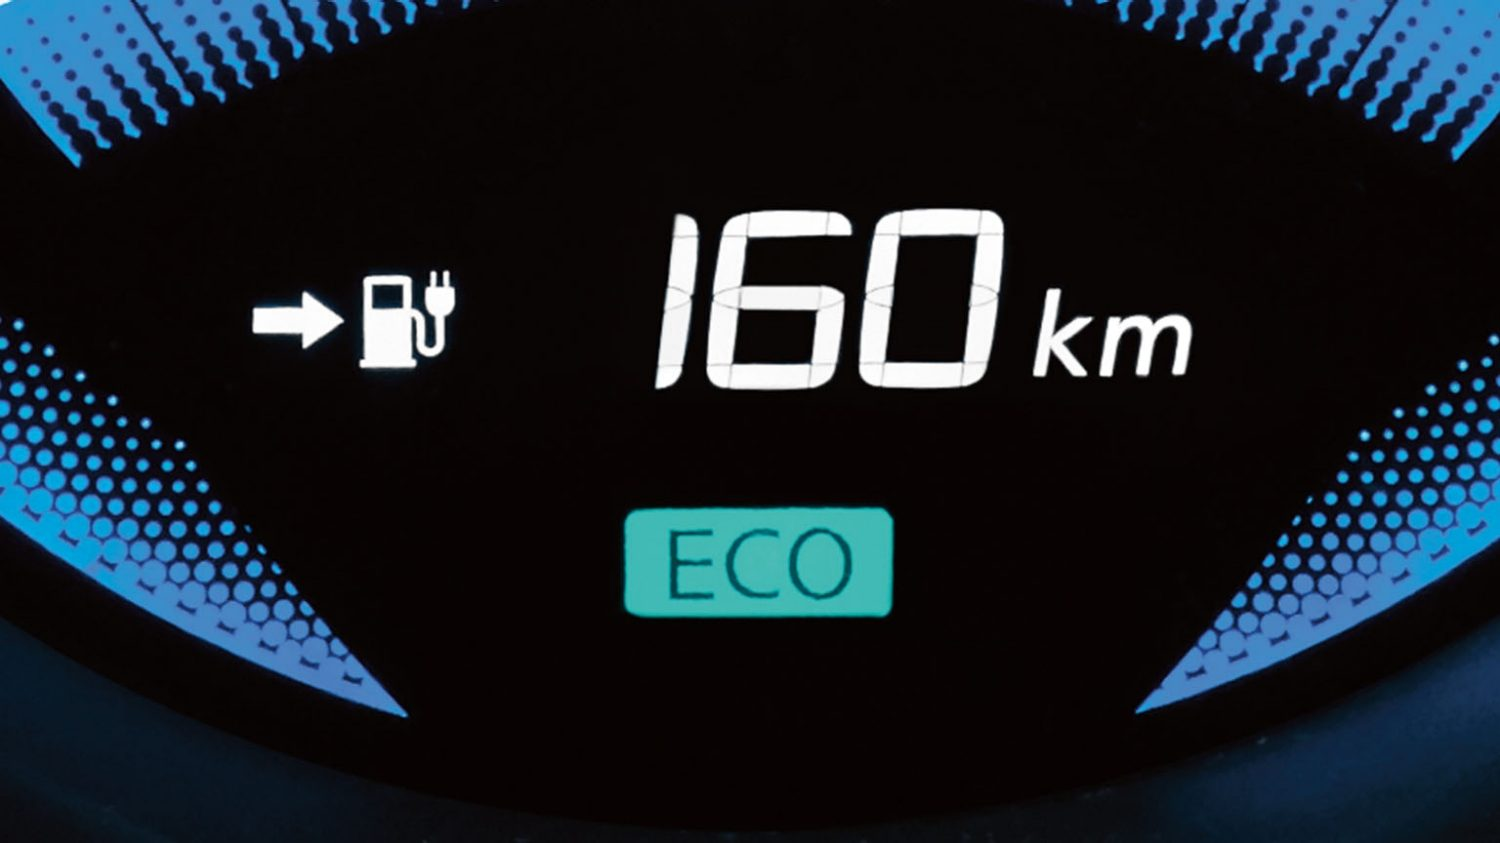 Nissan e-NV200 - Close up of display